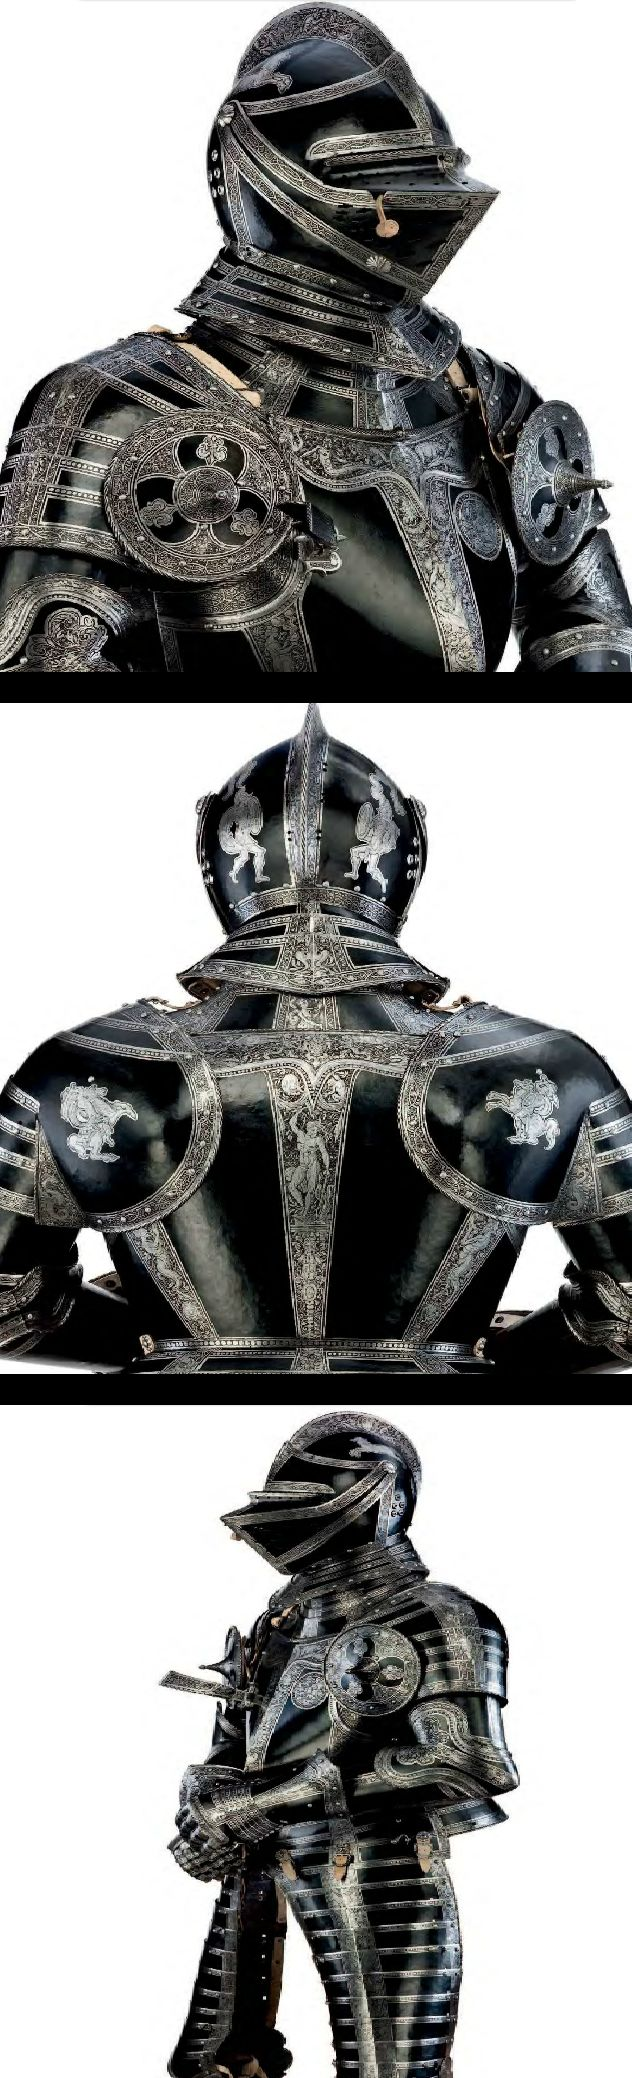 "An exceptionally fine and rare north German field armour with etched decoration, from the Armoury of ""JULIUS DUKE OF BRUNSWICK-WOLFENBUTTEL"", Brunswick, ca. 1560. (PF)"